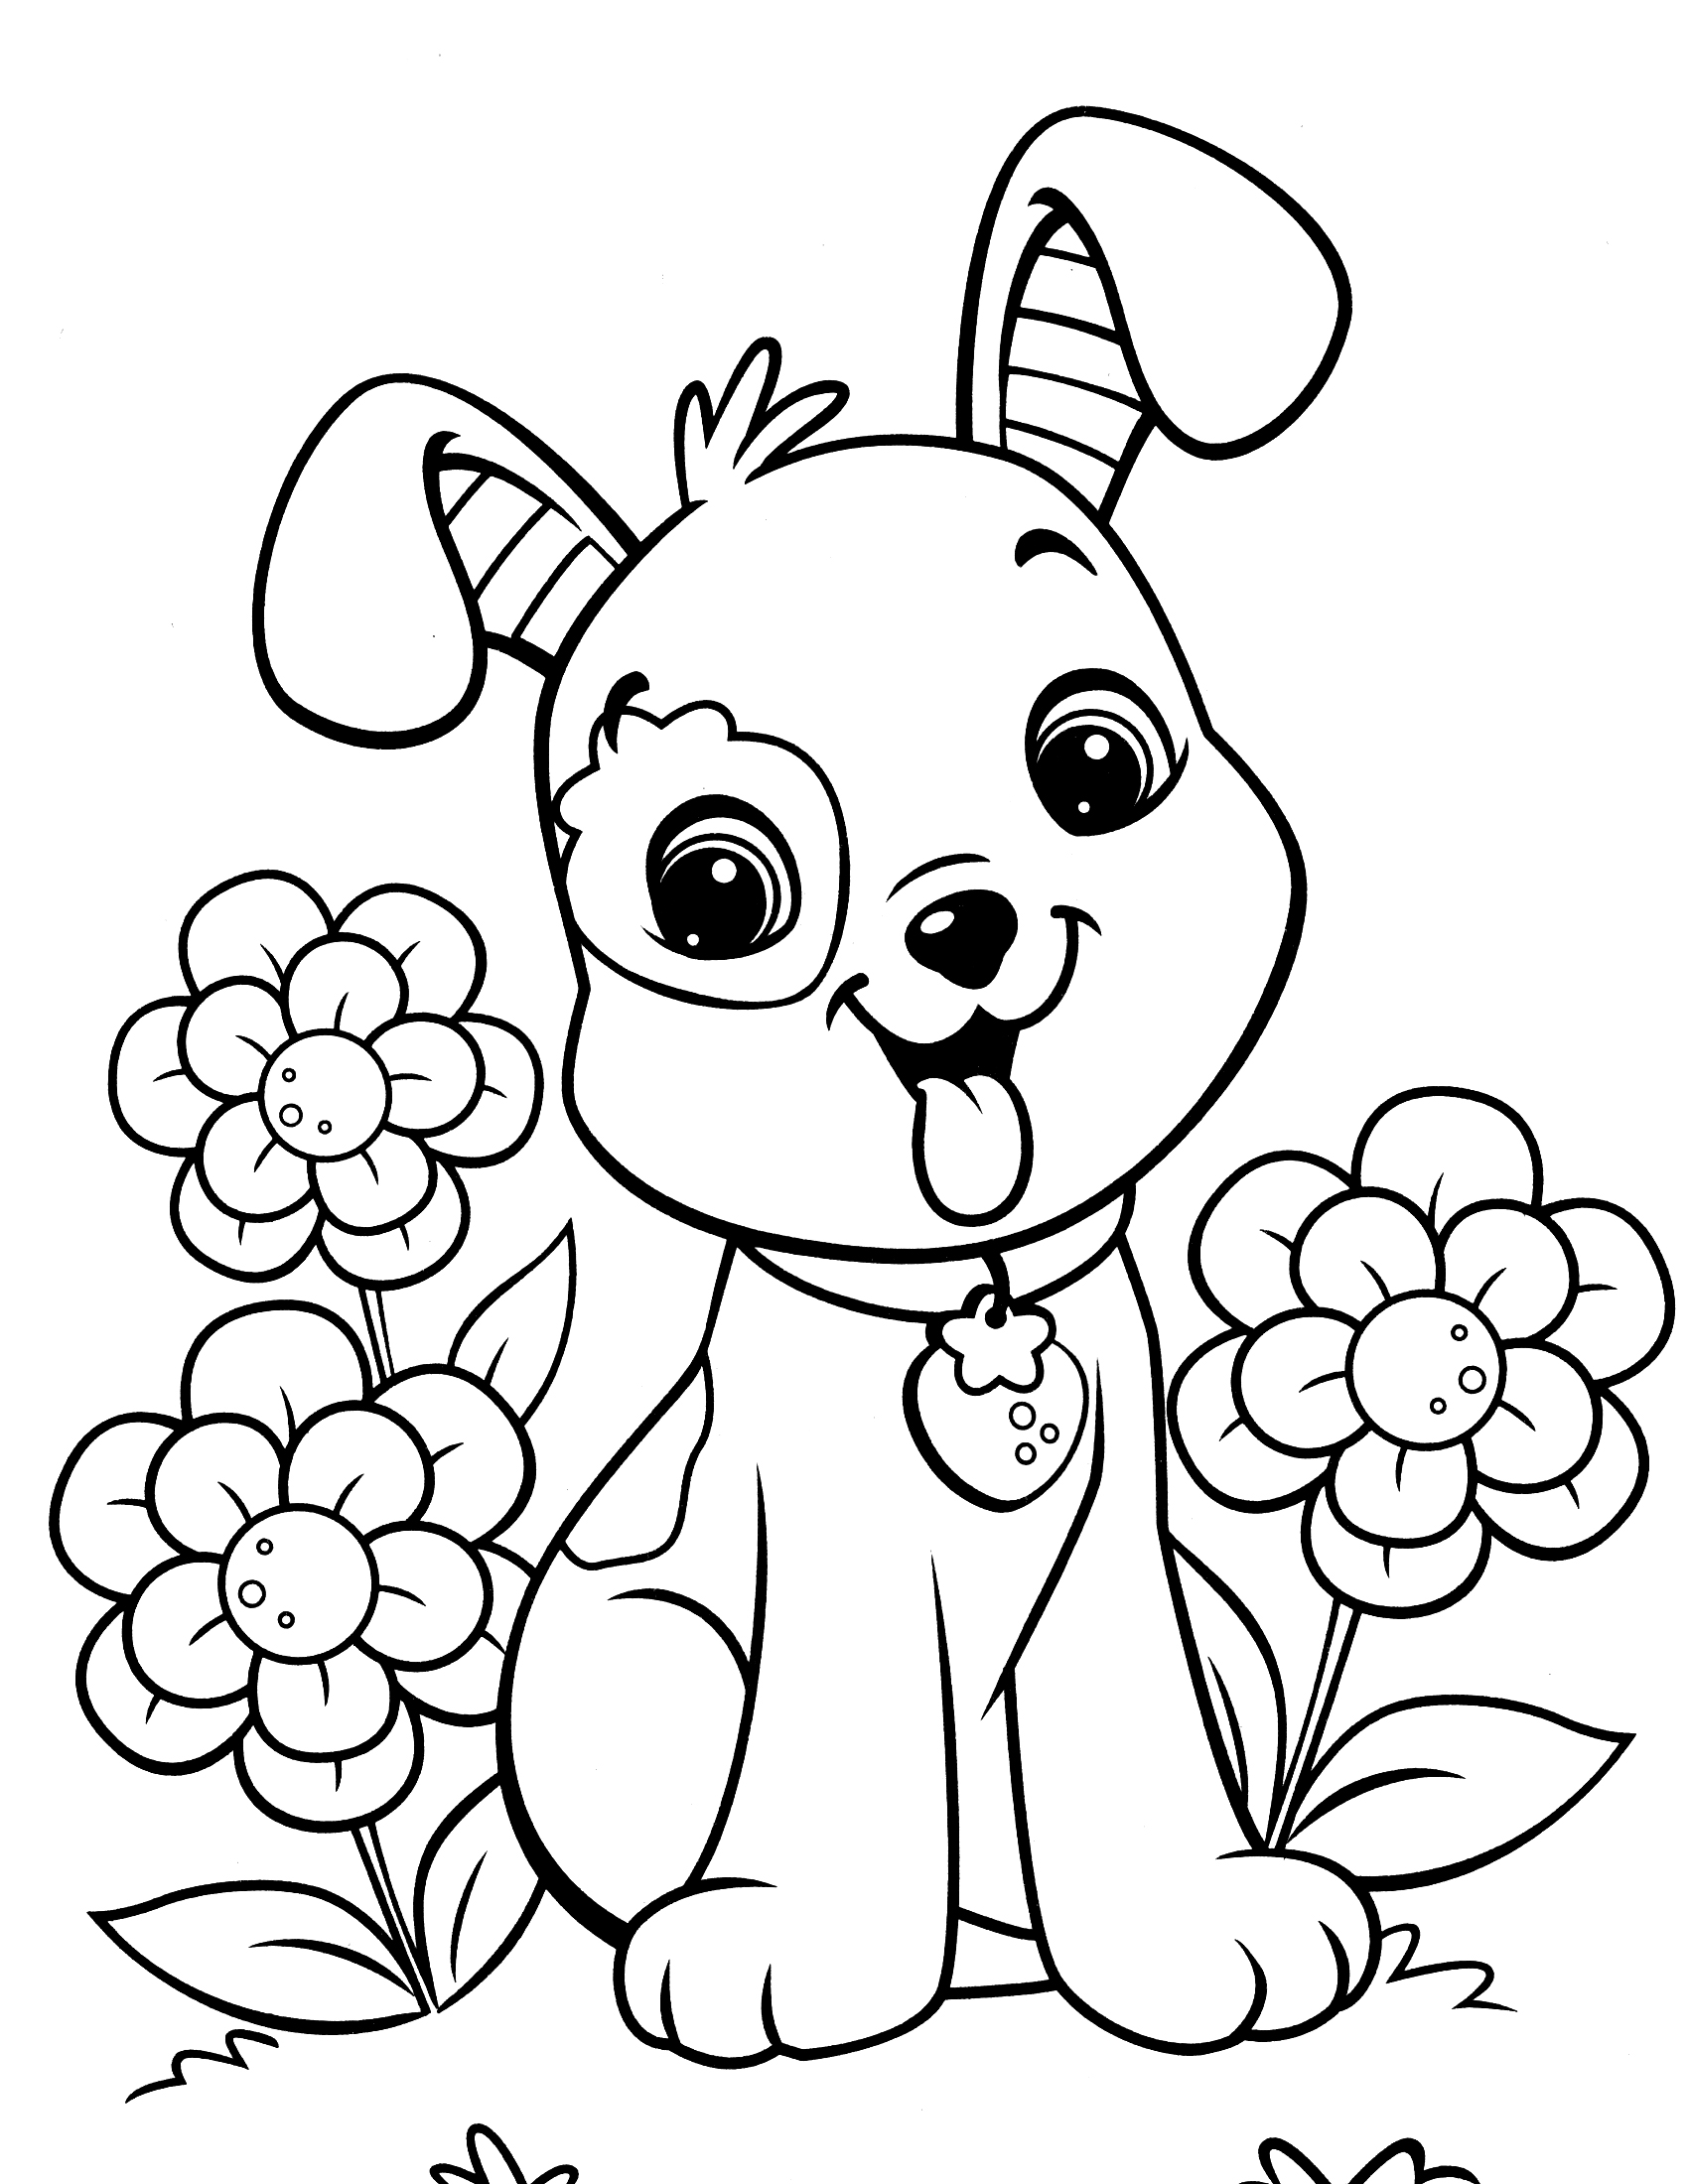 coloring picture dog free printable puppies coloring pages for kids picture dog coloring